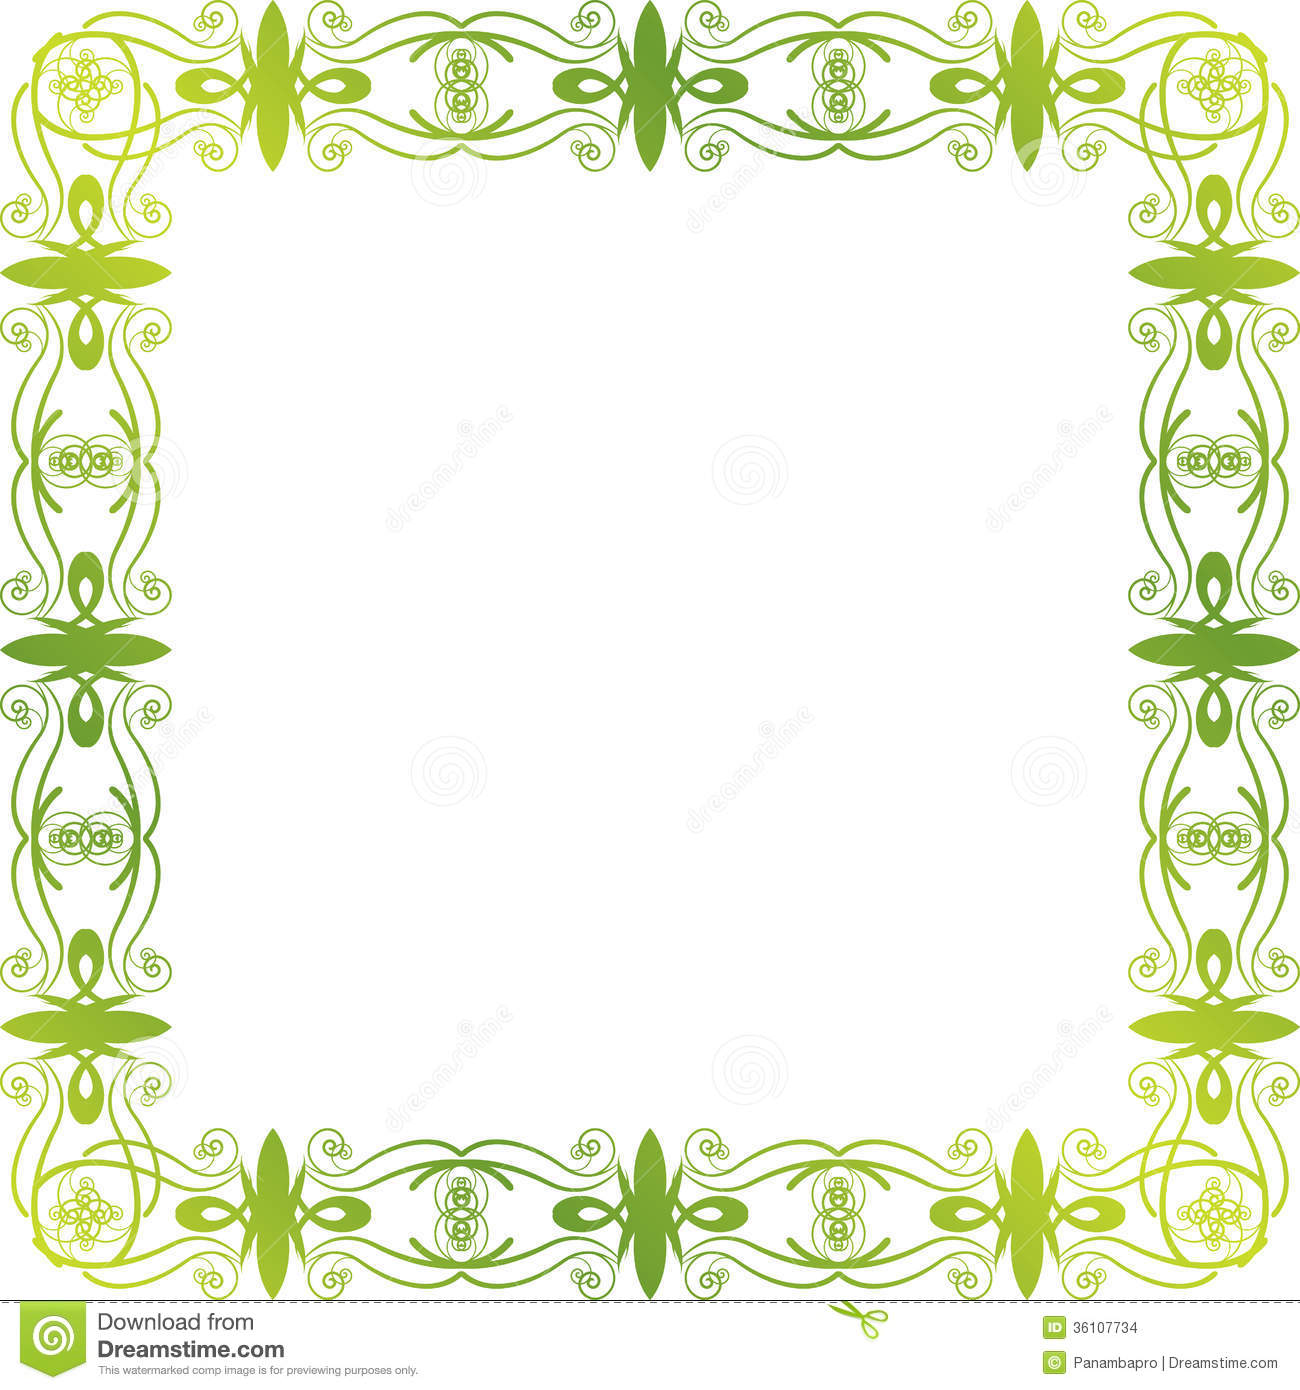 free green floral frame - photo #29